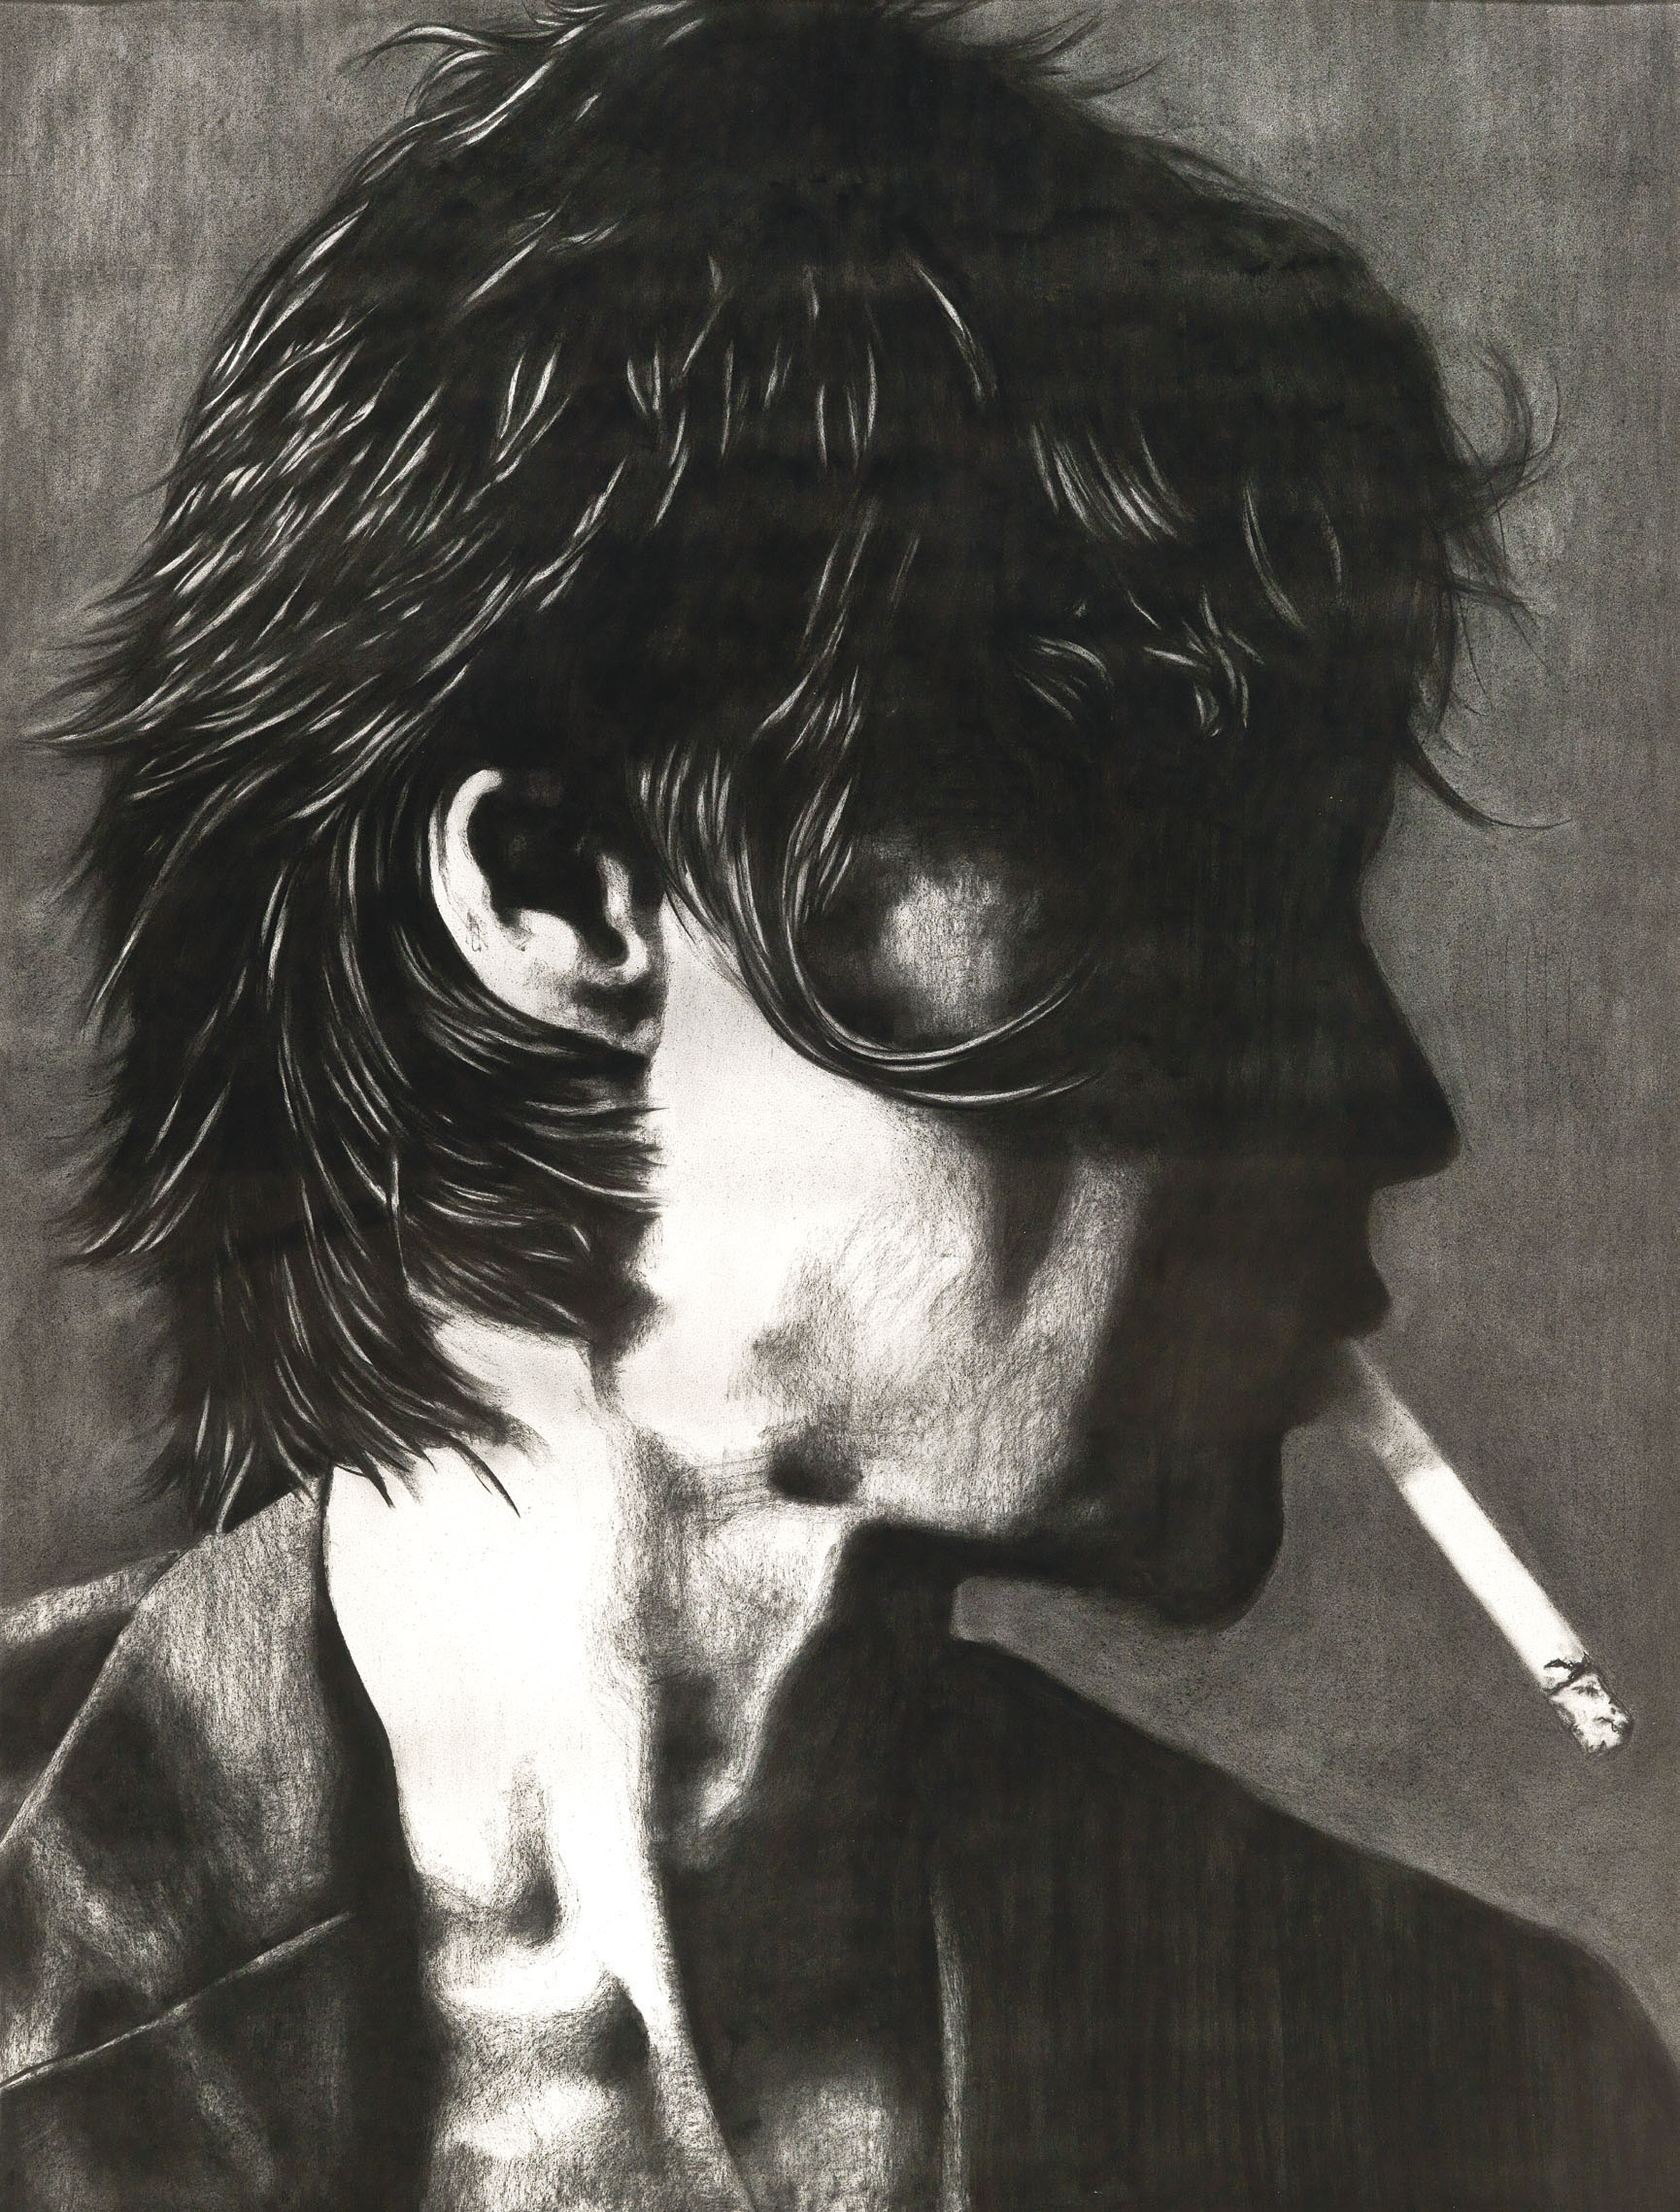 Untitled (Side View with Cigarette)